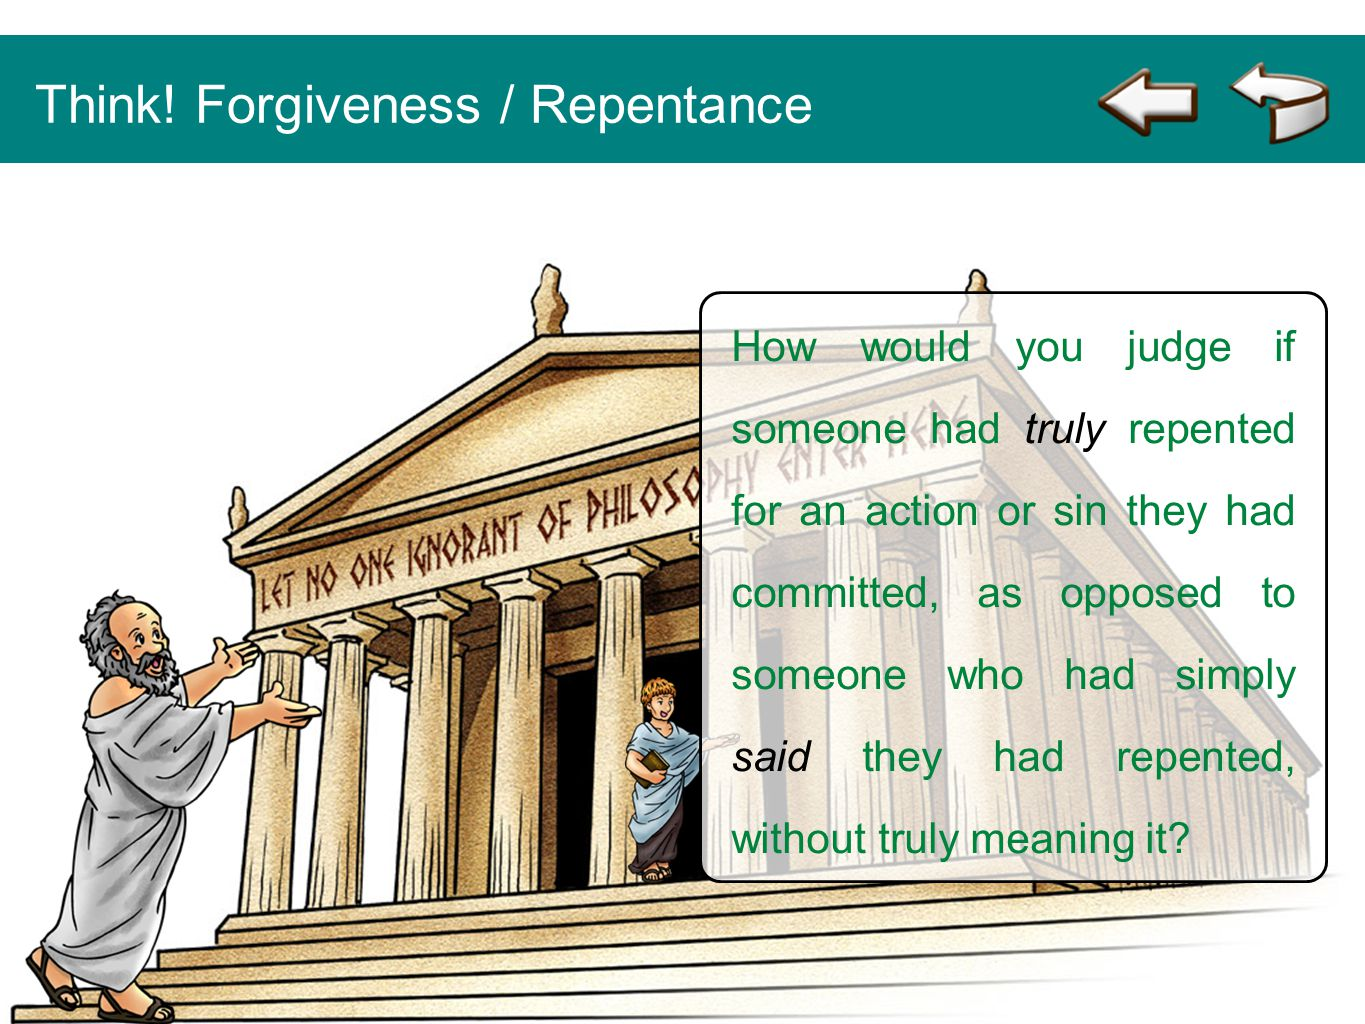 Think! Forgiveness / Repentance